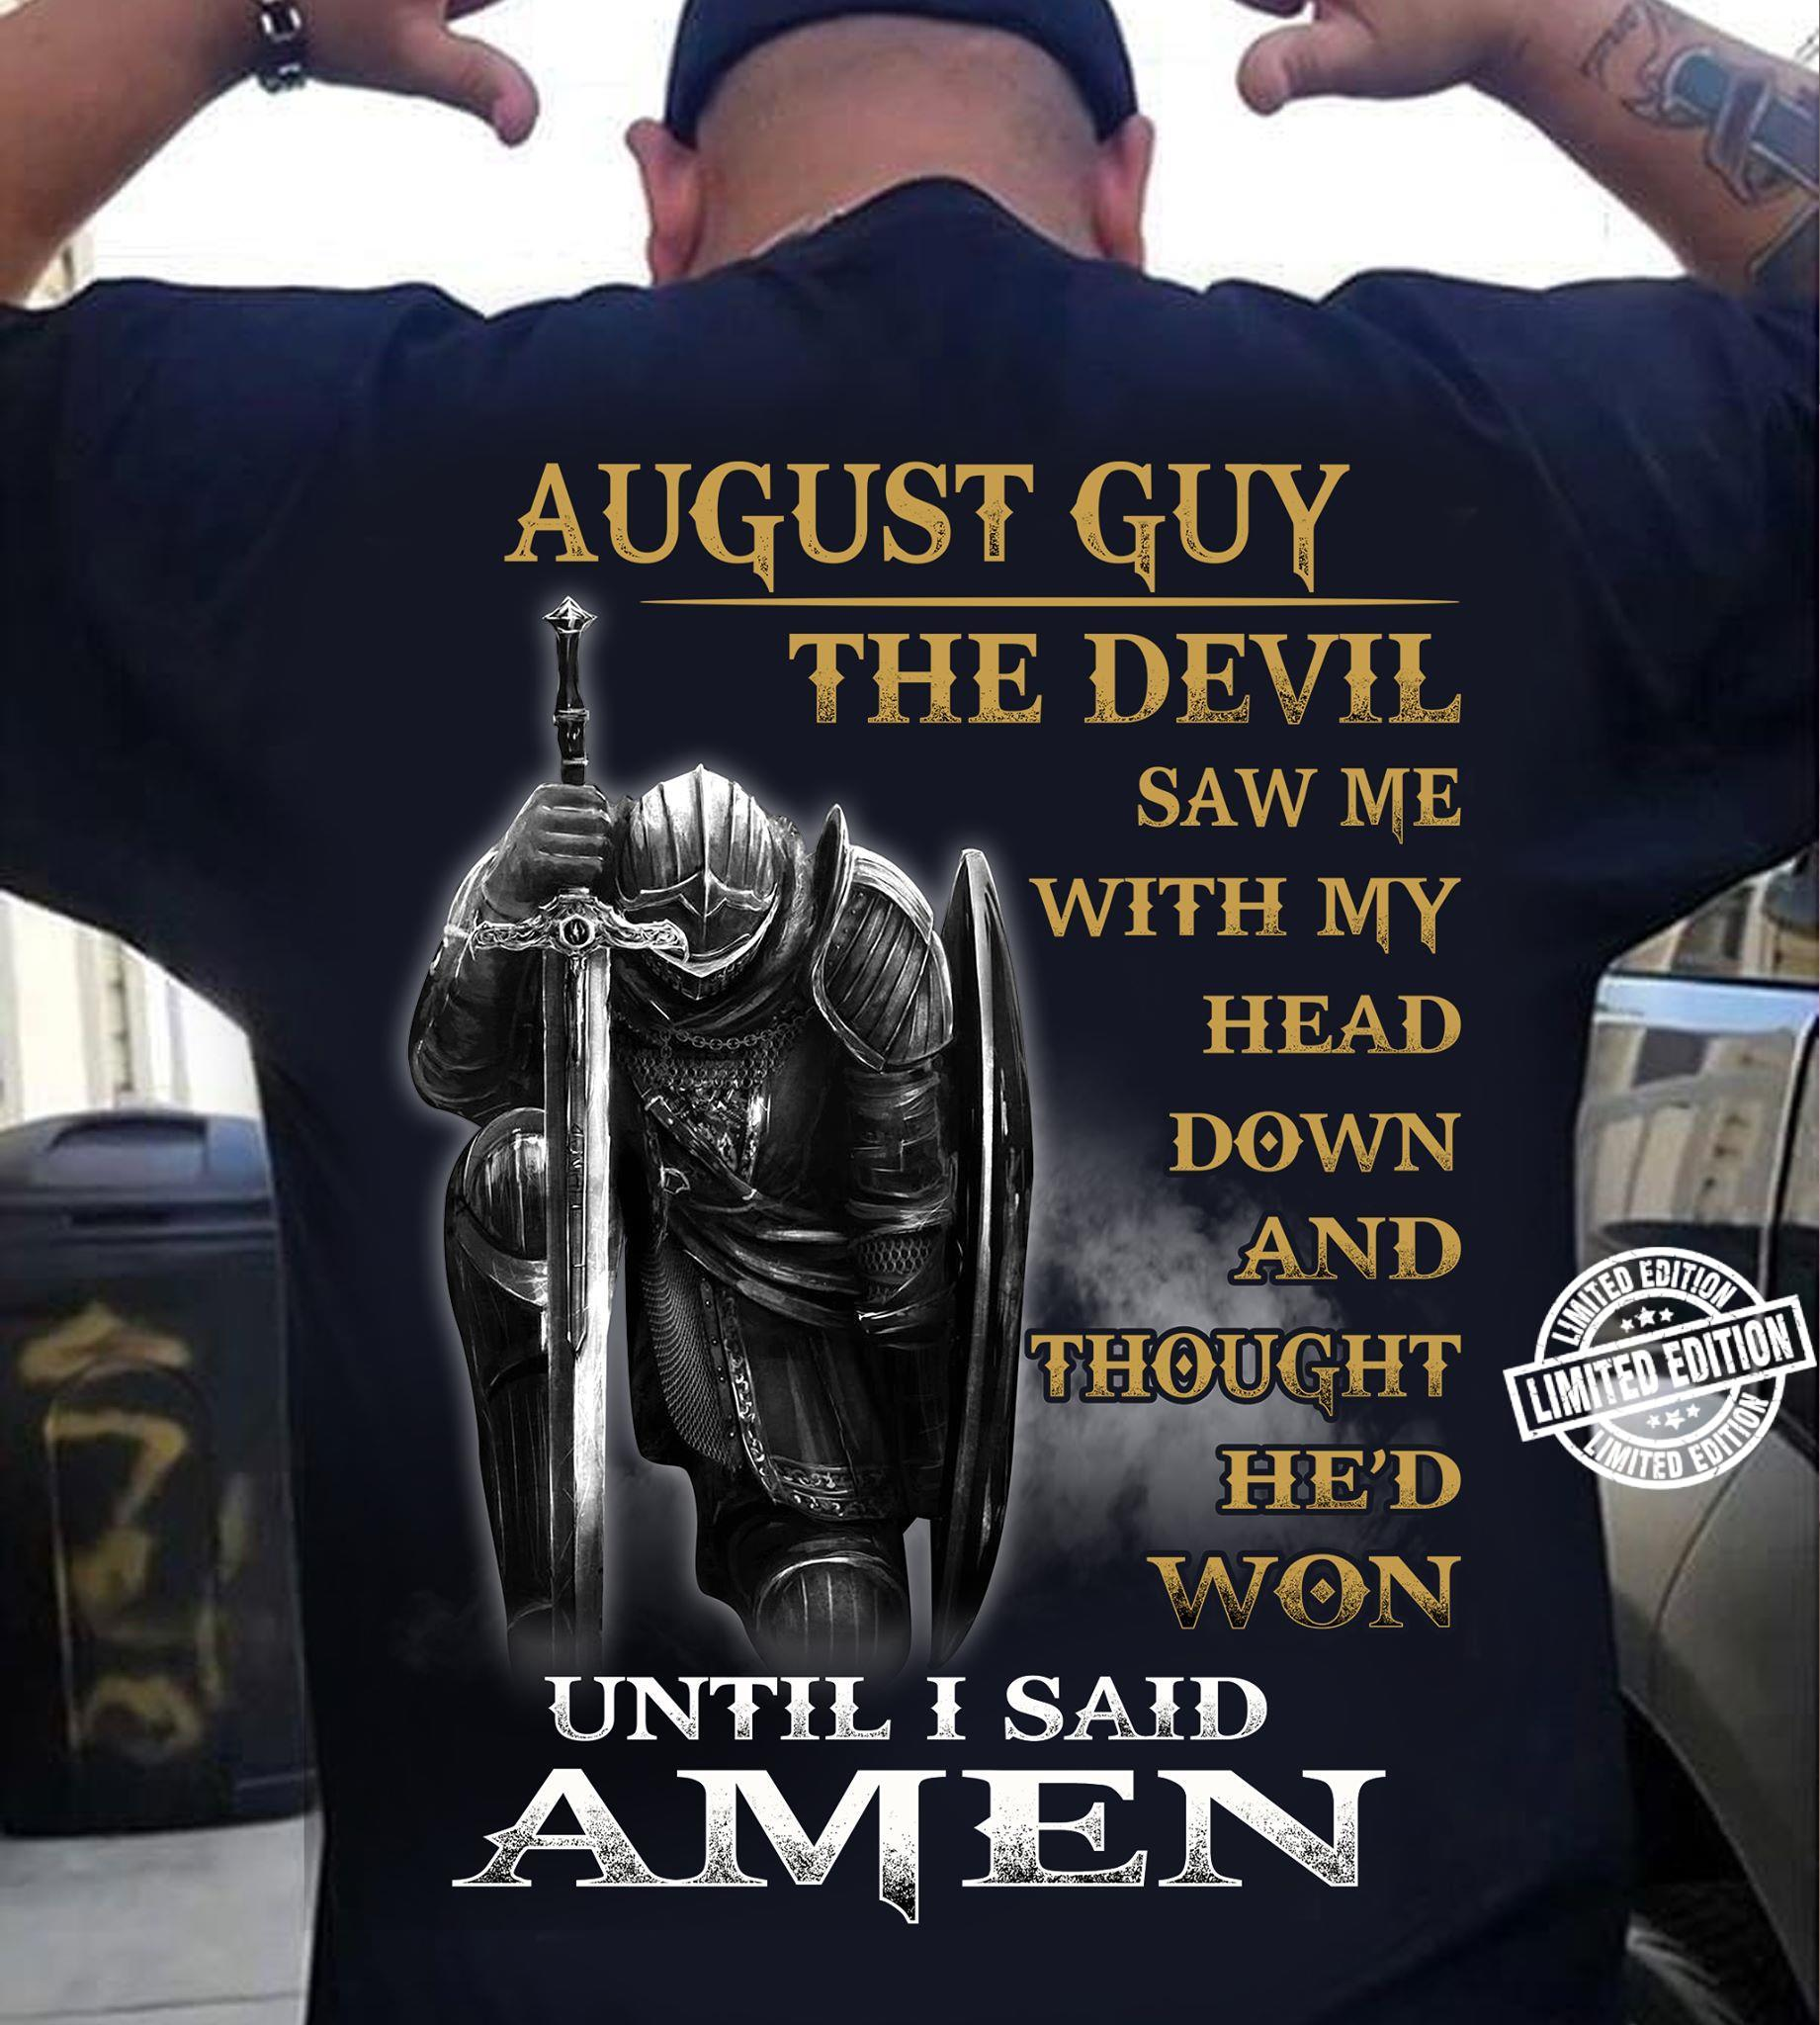 August guy the devil saw me with my head down and thought he'd won ubtil i said amen shirt